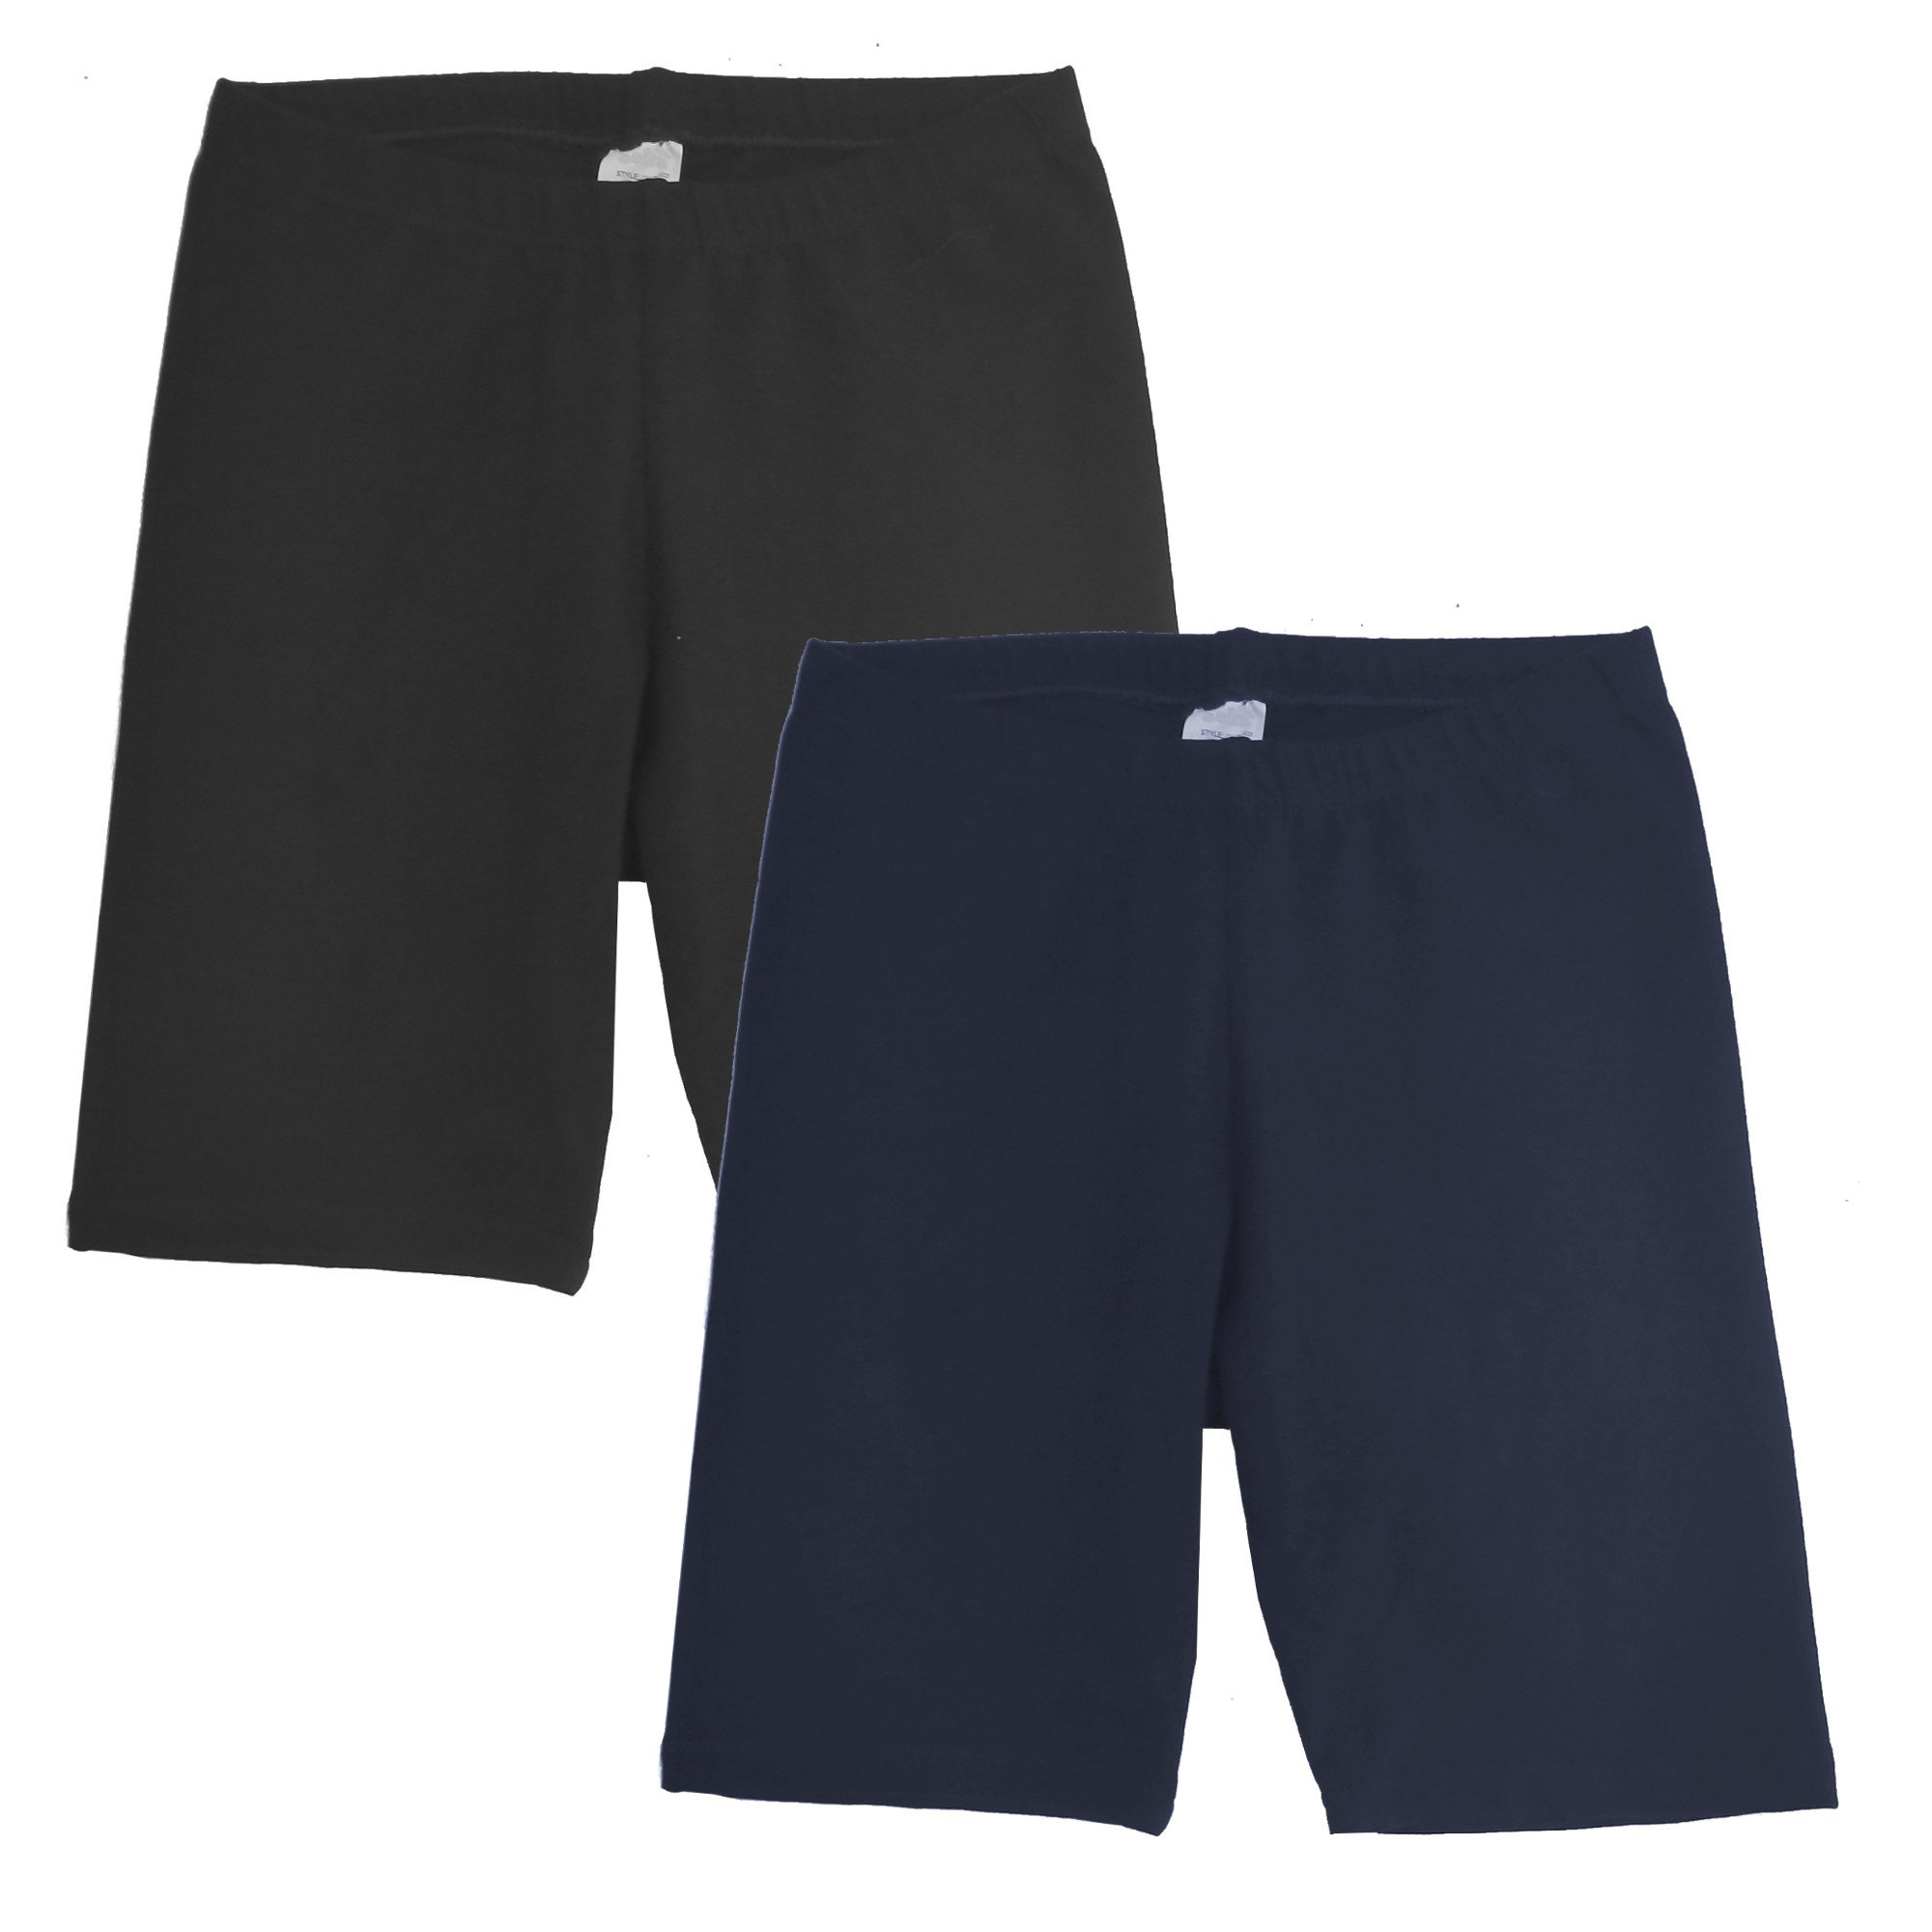 Popular Toddler Boy's Pull On Cotton Shorts - 2 Pack - Black and Navy - L